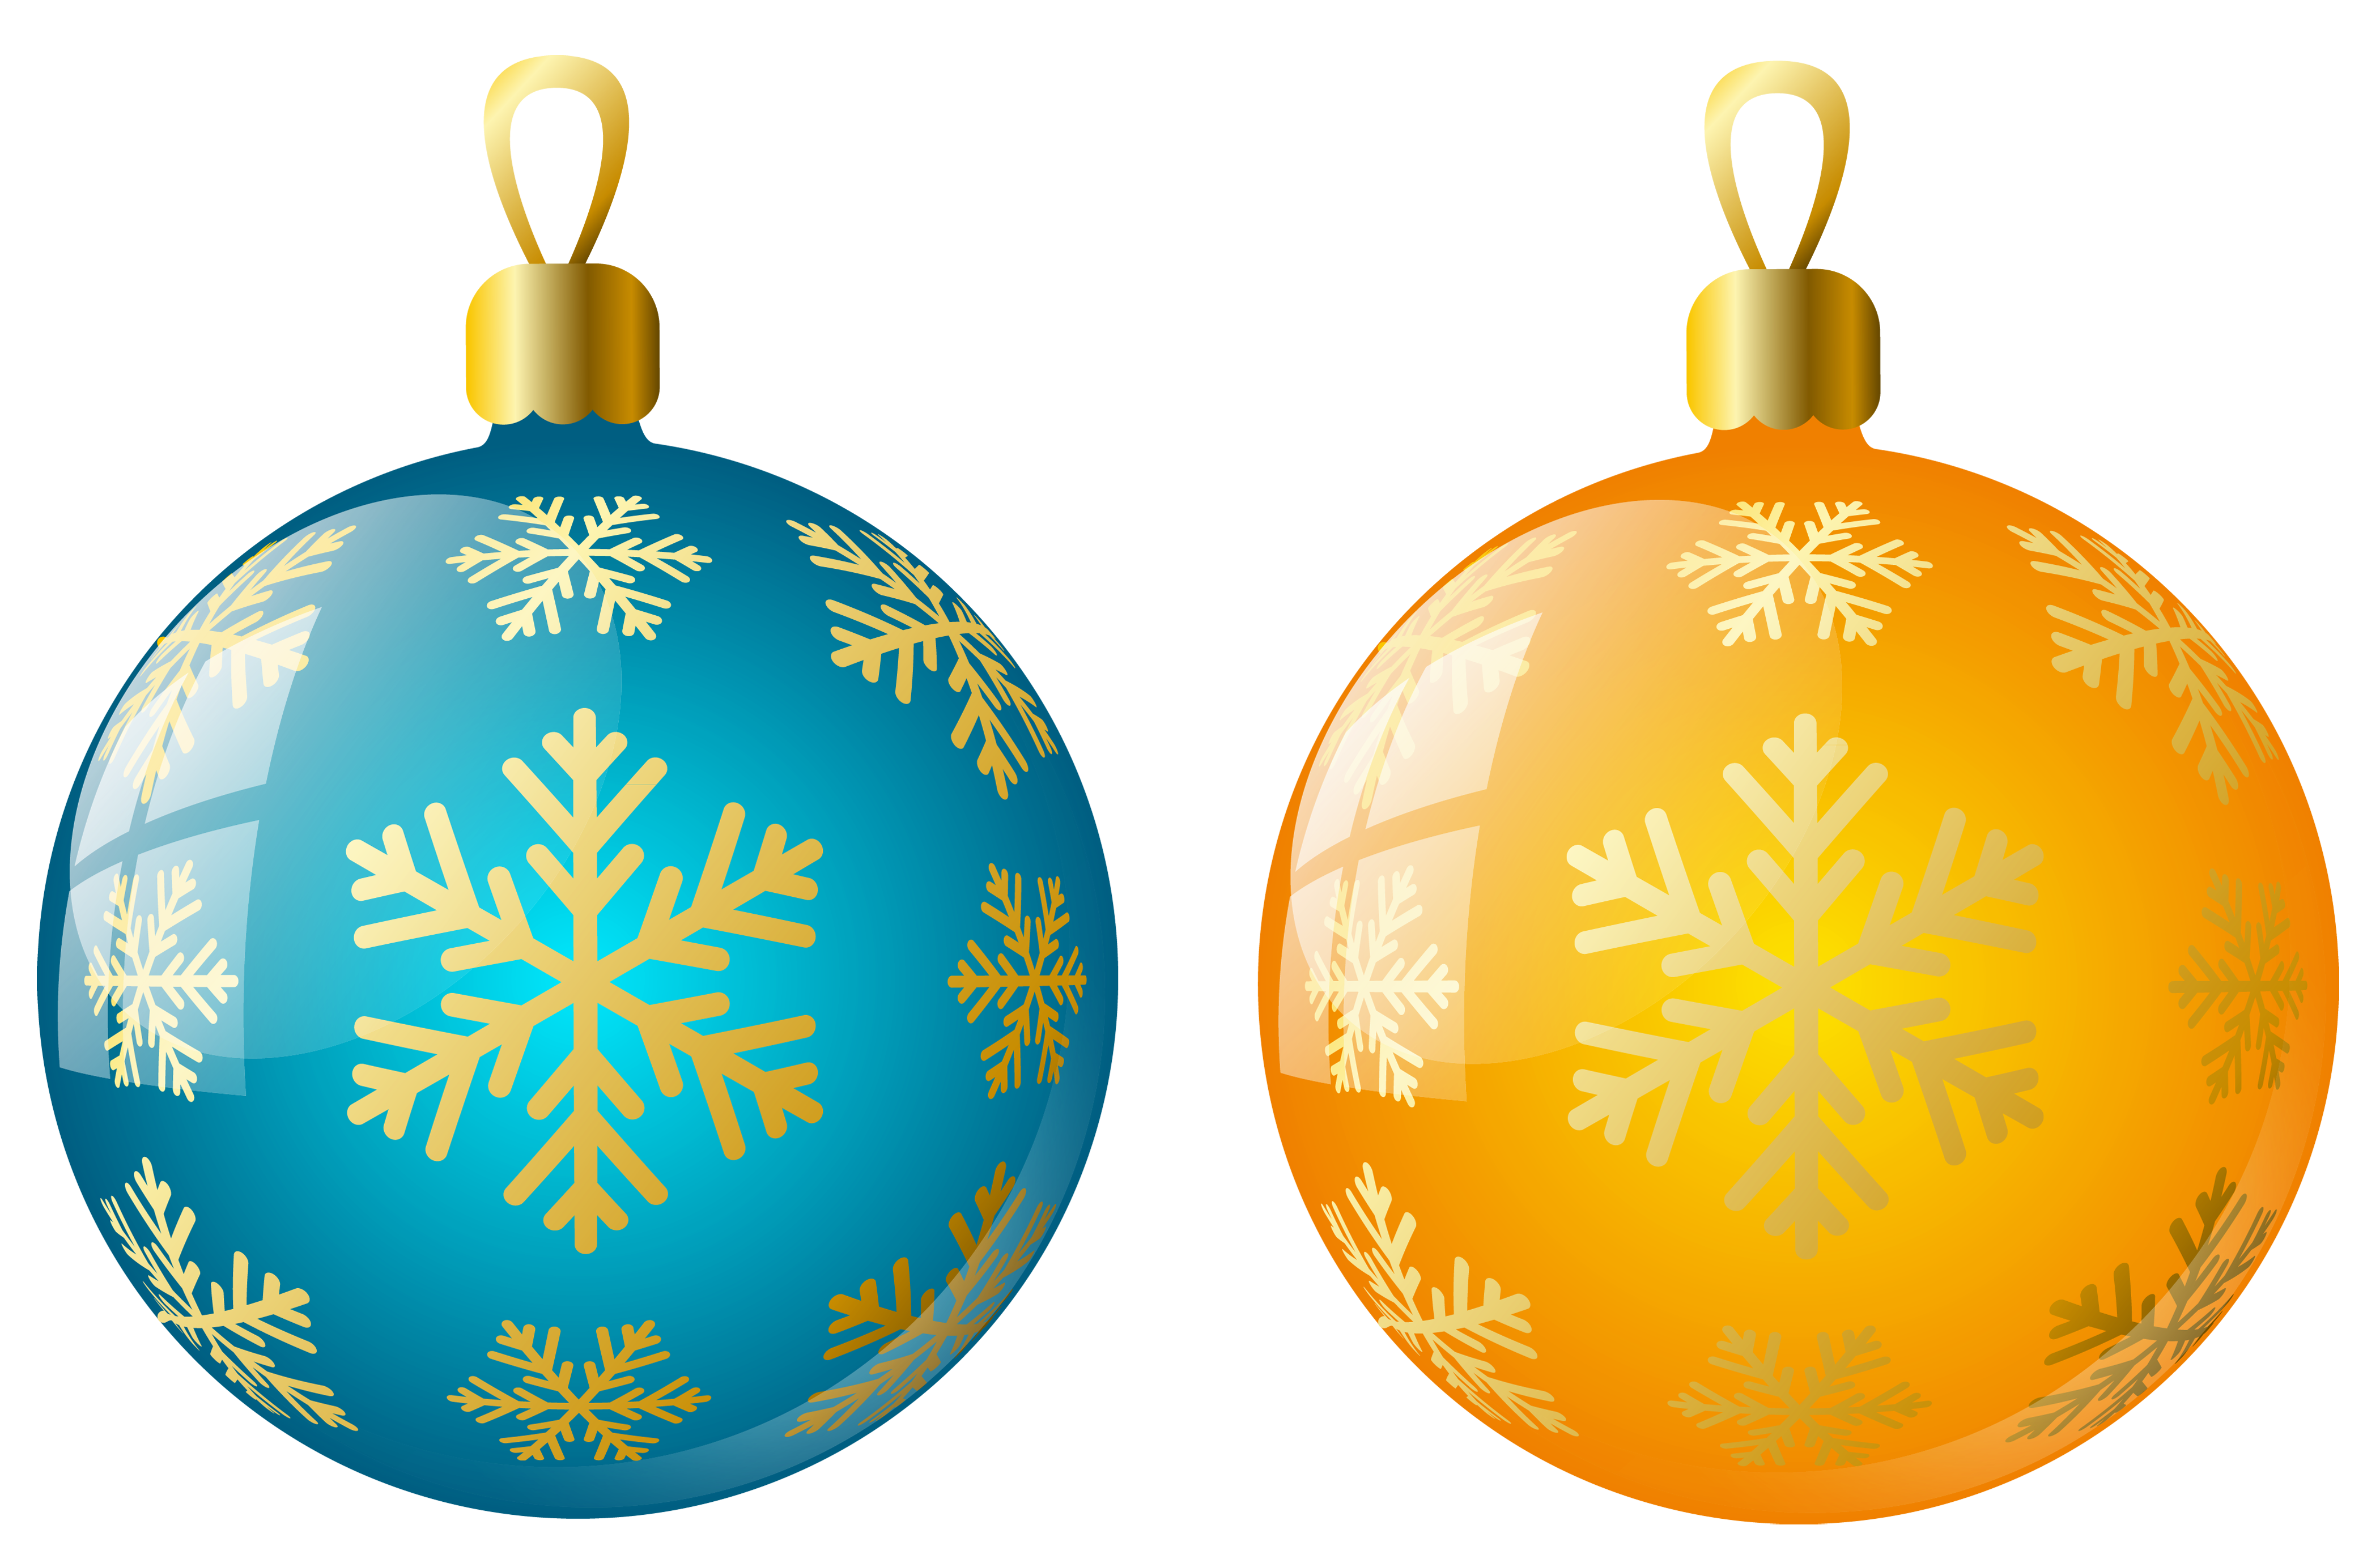 Christmas ball clipart clip art black and white Large Size Transparent Yellow and Blue Christmas Ball Ornaments ... clip art black and white